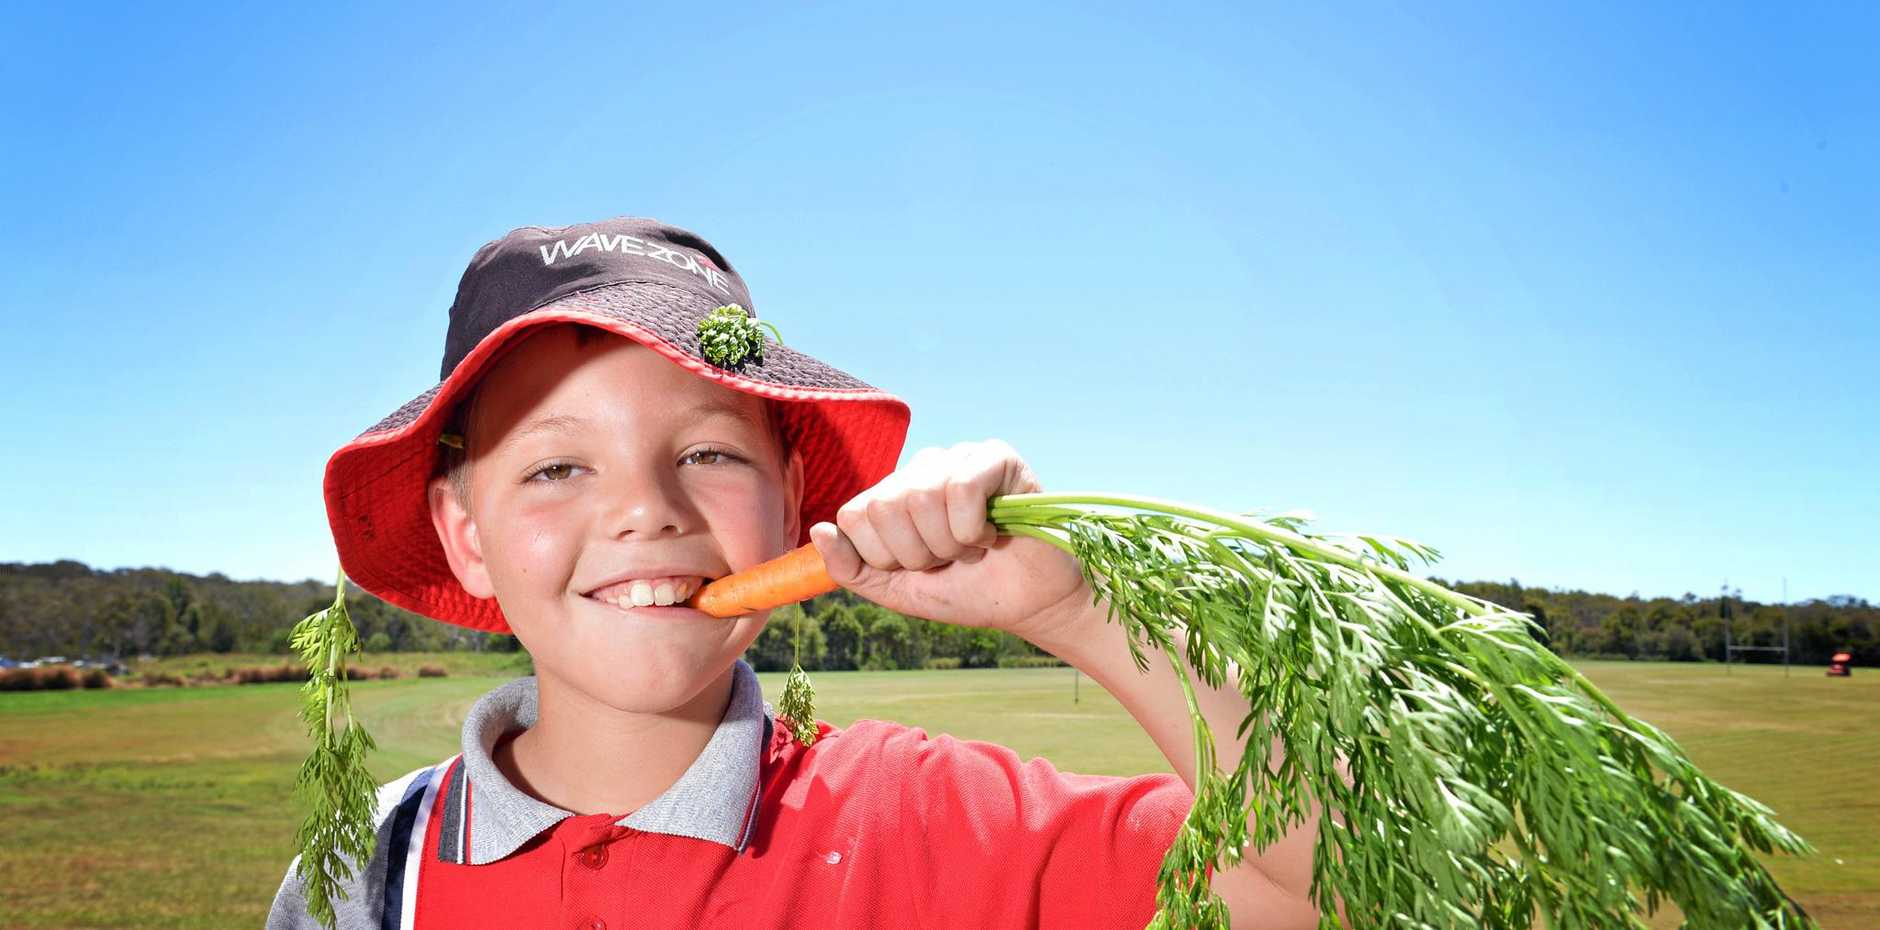 Crunch time for Wyatt Andrews in the Tin Can Bay state school's kitchen garden.